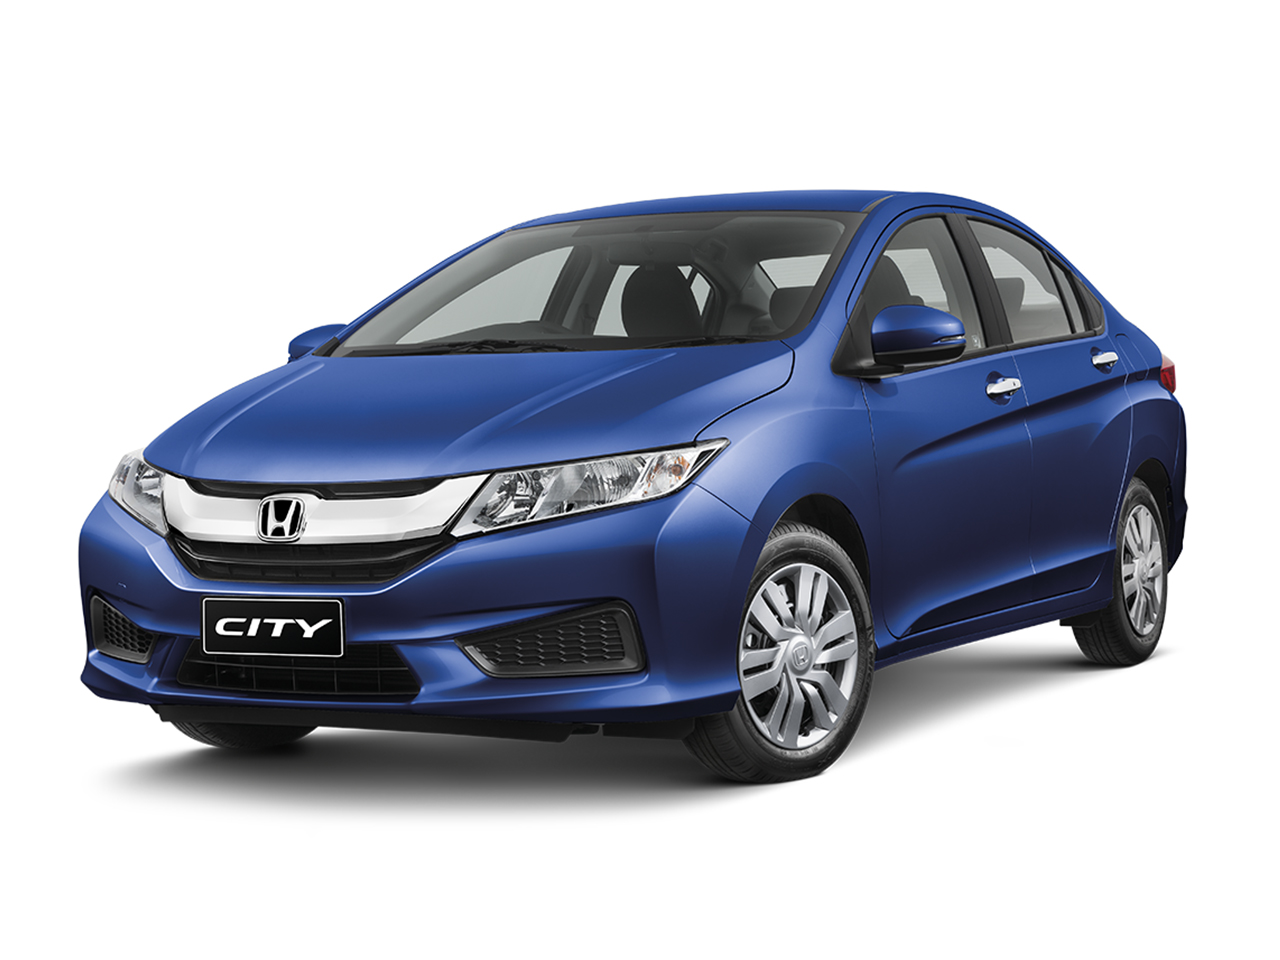 2017 Honda City Prices In Qatar Gulf Specs Amp Reviews For